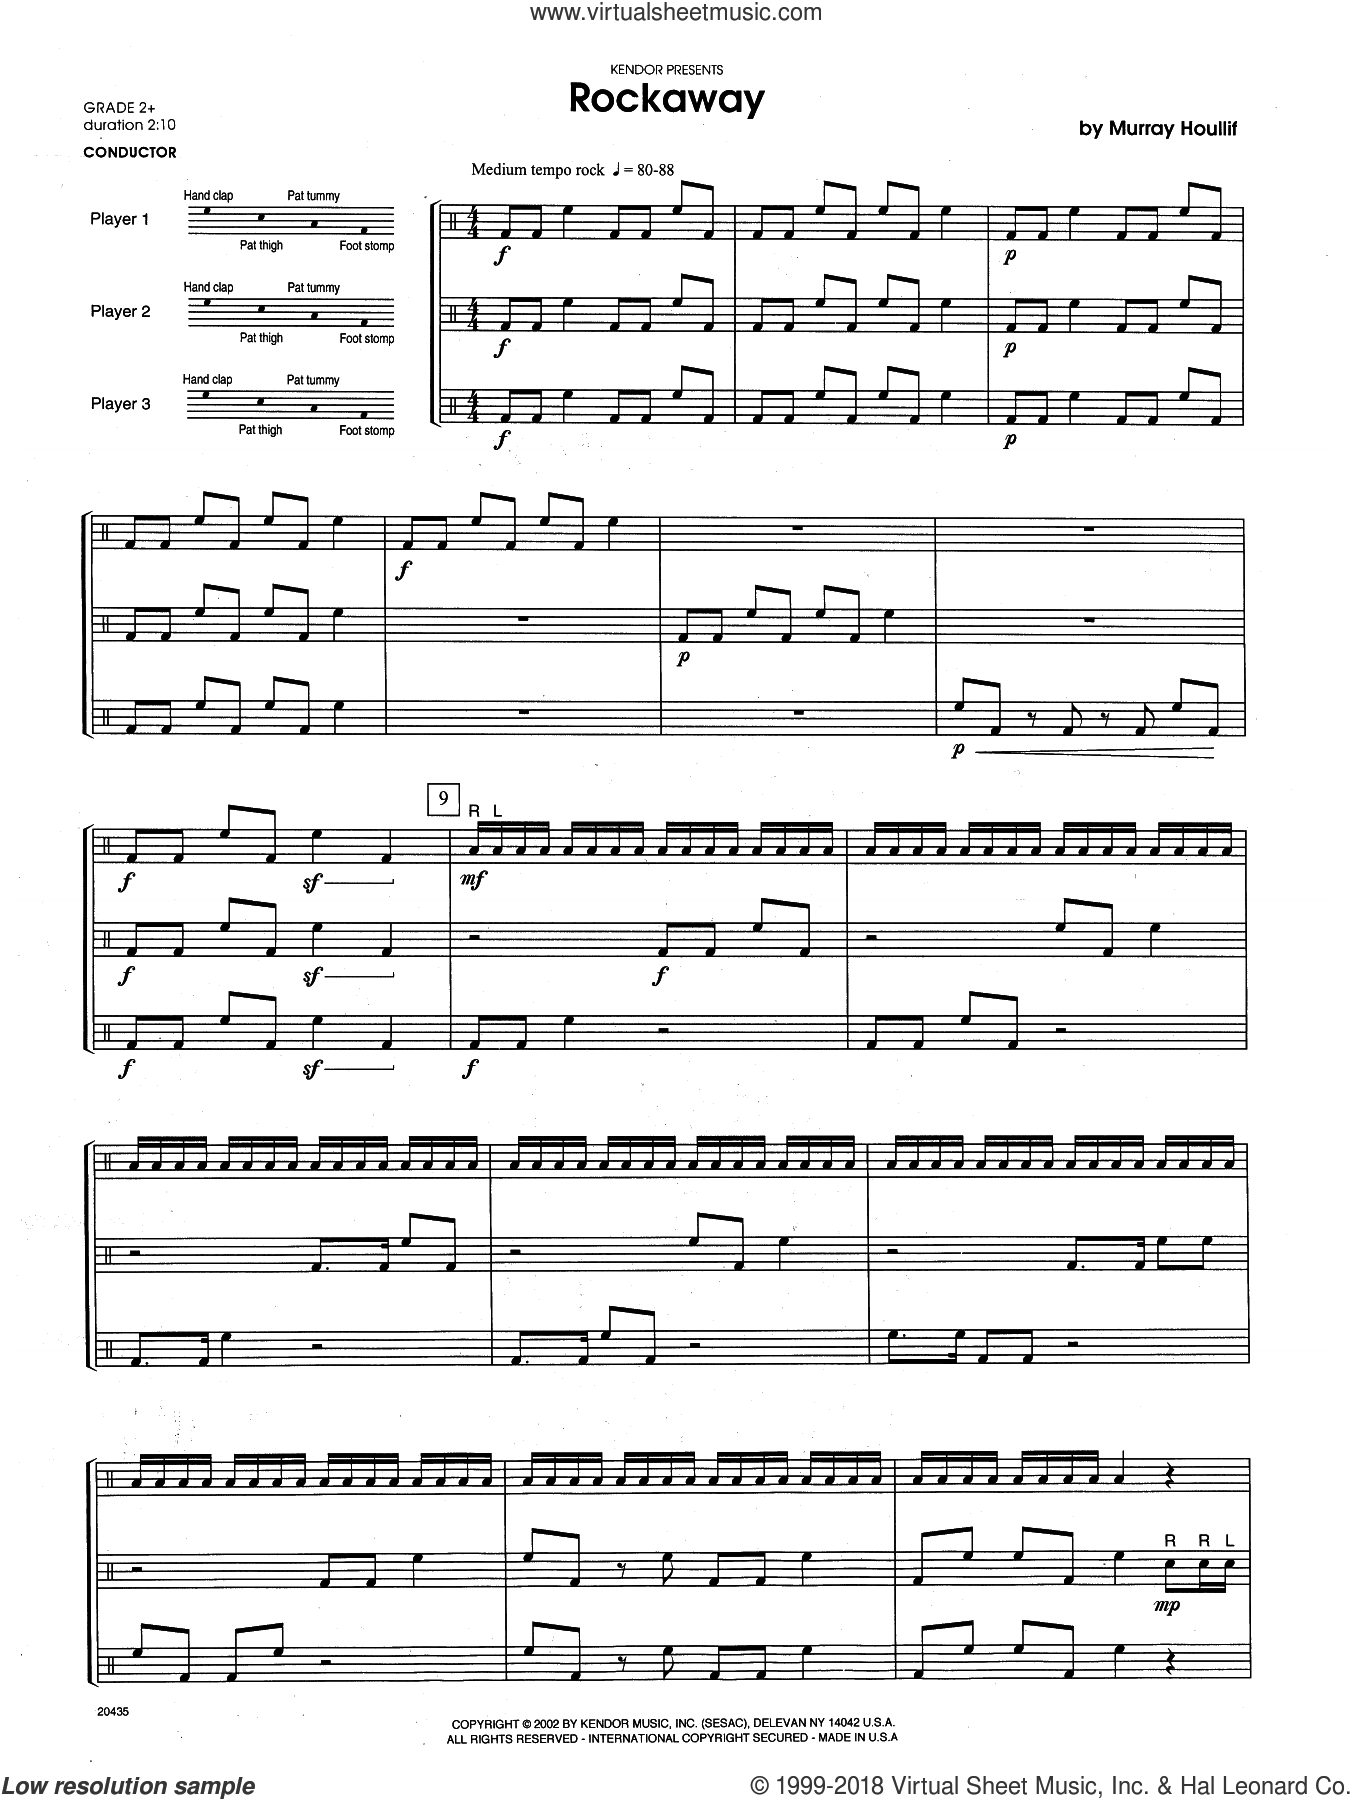 Rockaway (COMPLETE) sheet music for percussions by Houllif, intermediate